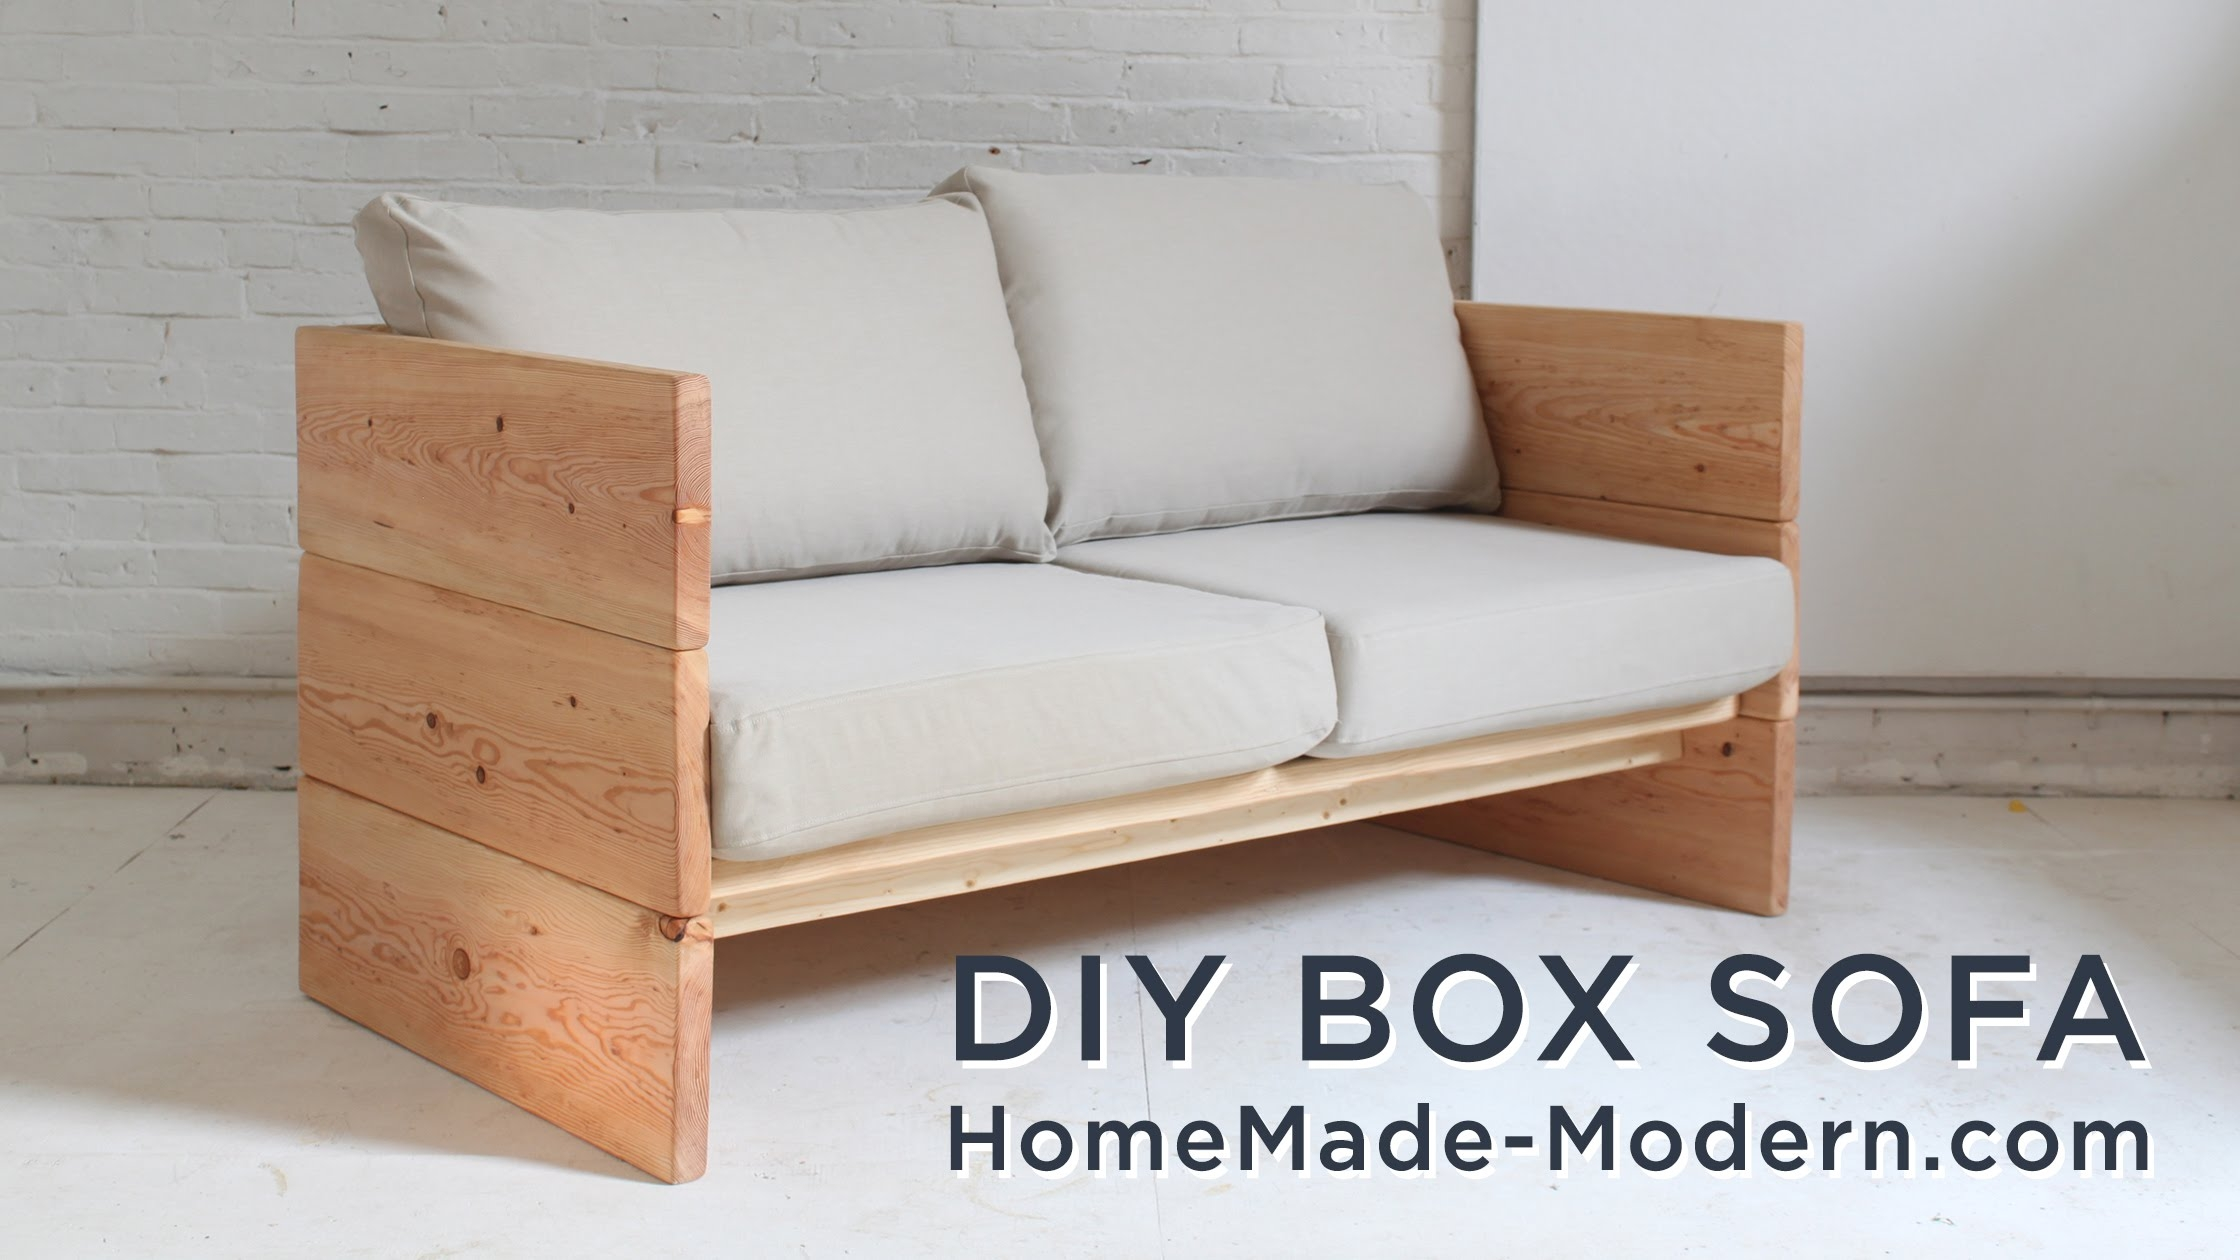 Diy Sofa Made Out Of 2x10s Furniture Fun Pinterest Diy Sofa Intended For Diy Sectional Sofa Plans (#9 of 12)